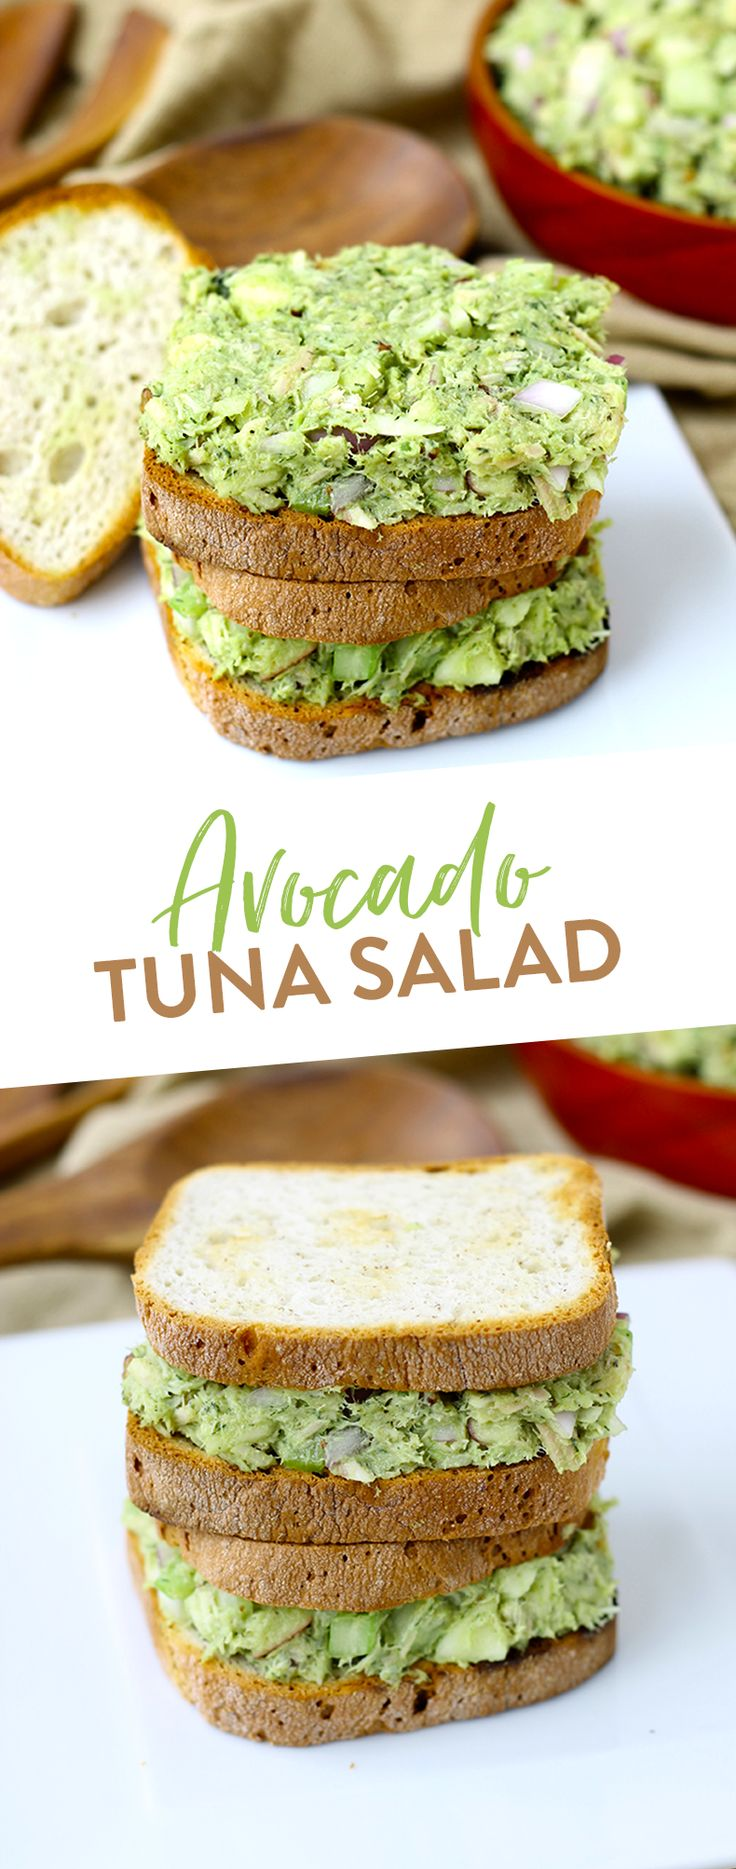 This easy lunch for Avocado Tuna Salad recipe whips up in minutes and uses healthier swaps to up your tuna salad game. No more mayo needed!